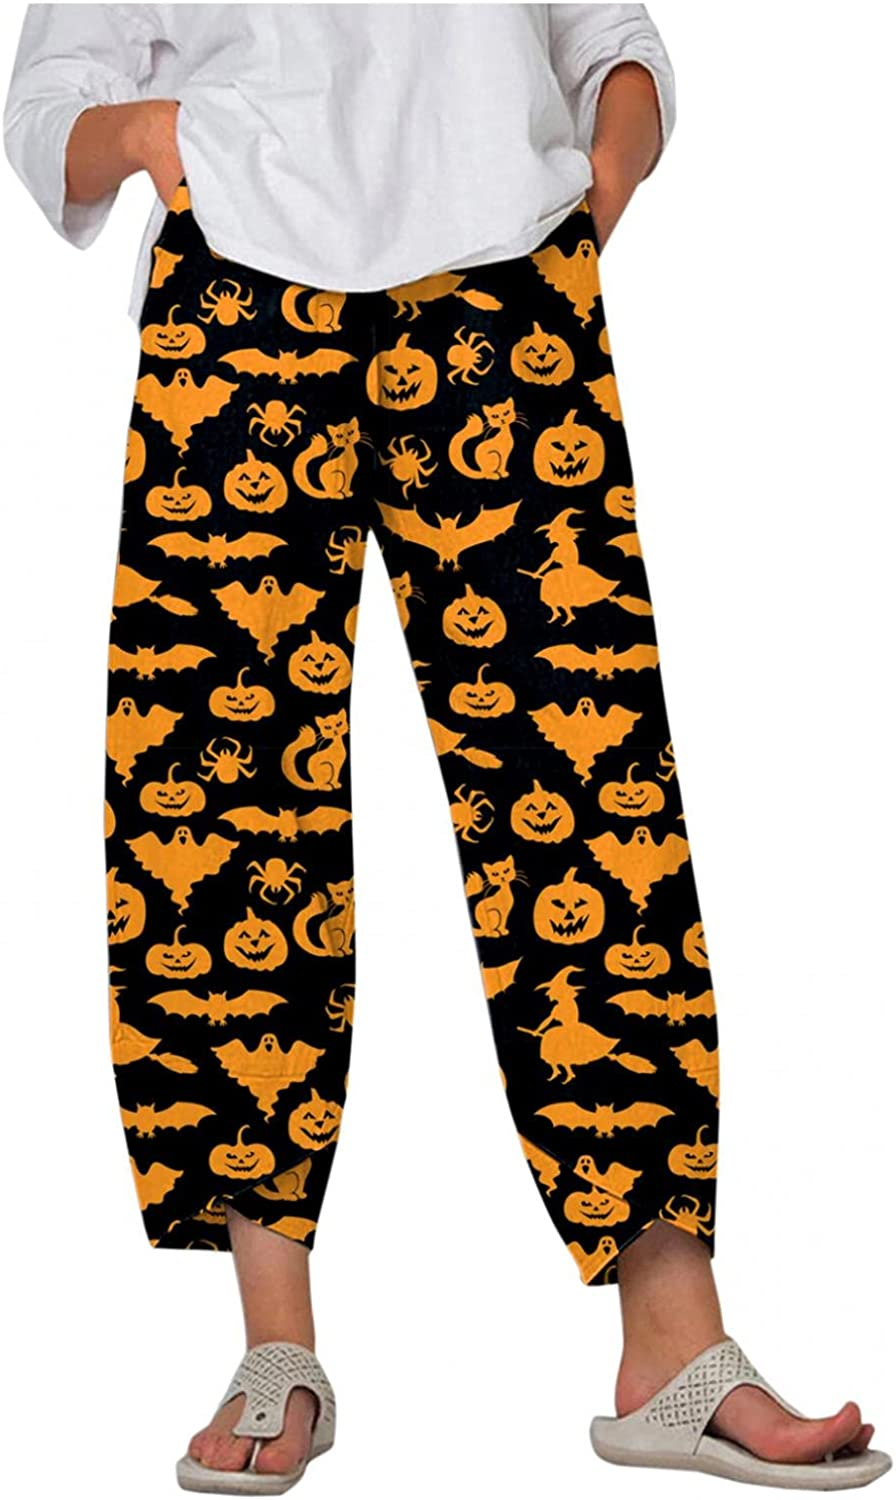 Womens High Waisted Halloween Print Crop Cone Pants Elastic Waist Comfy Wide Leg Long Trousers with Pockets